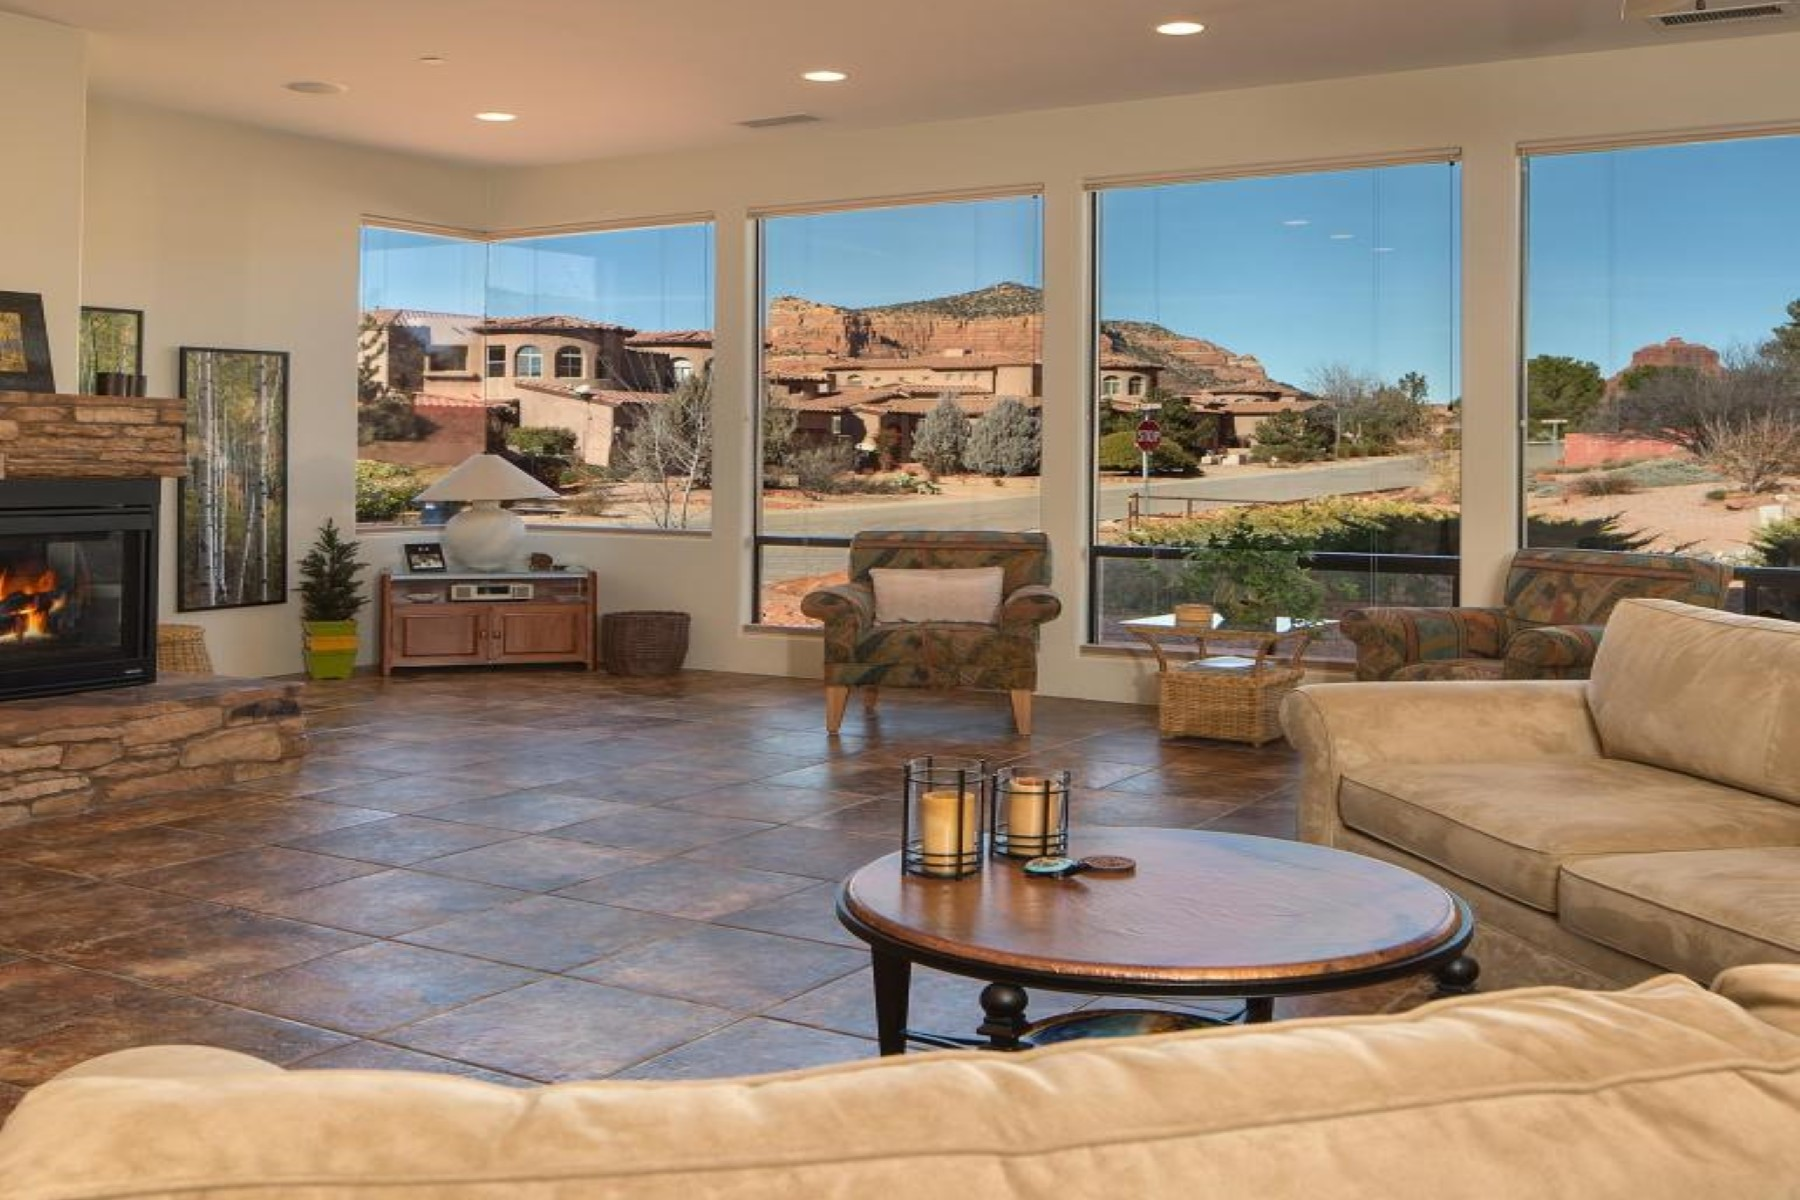 Single Family Home for Sale at Custom Southwest designed residence in prestigious Village Oak Creek 5 La Cuerda Sedona, Arizona, 86351 United States